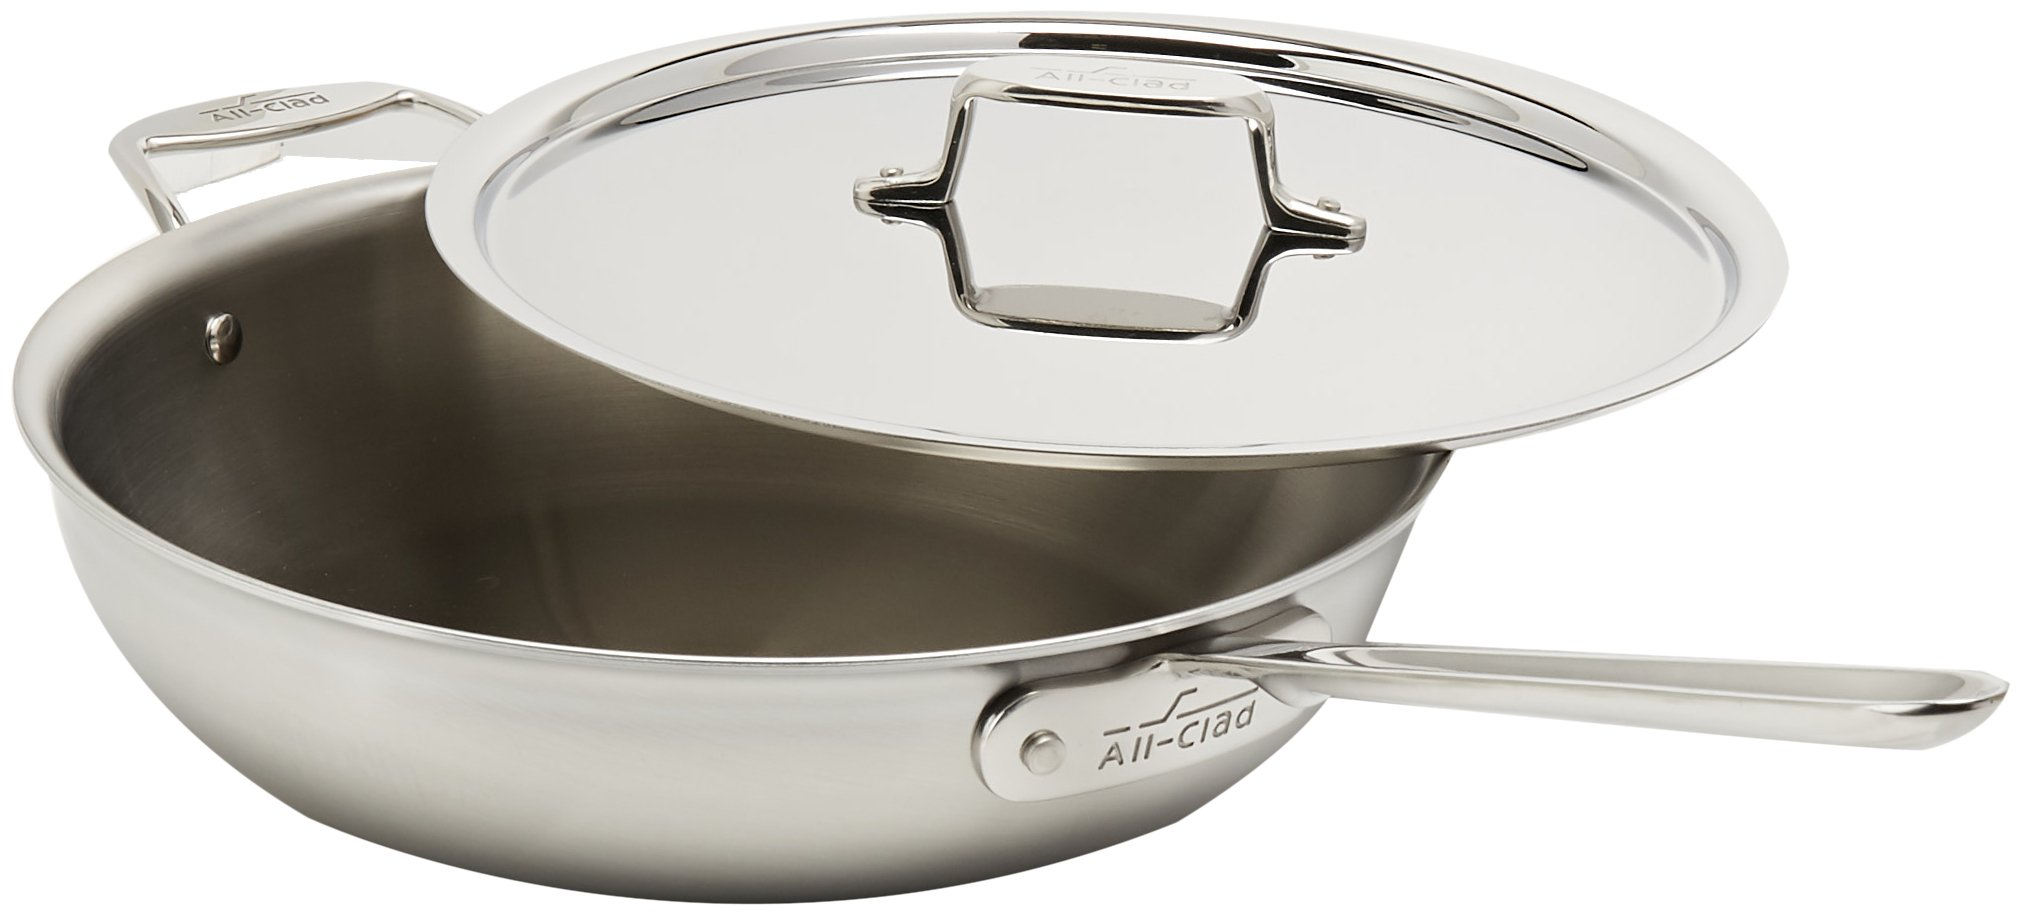 All-Clad BD55404 D5 Brushed 18/10 Stainless Steel 5-Ply Dishwasher Safe Week Night Pan Cookware, 4-Quart, Silver - 8701005202 by All-Clad